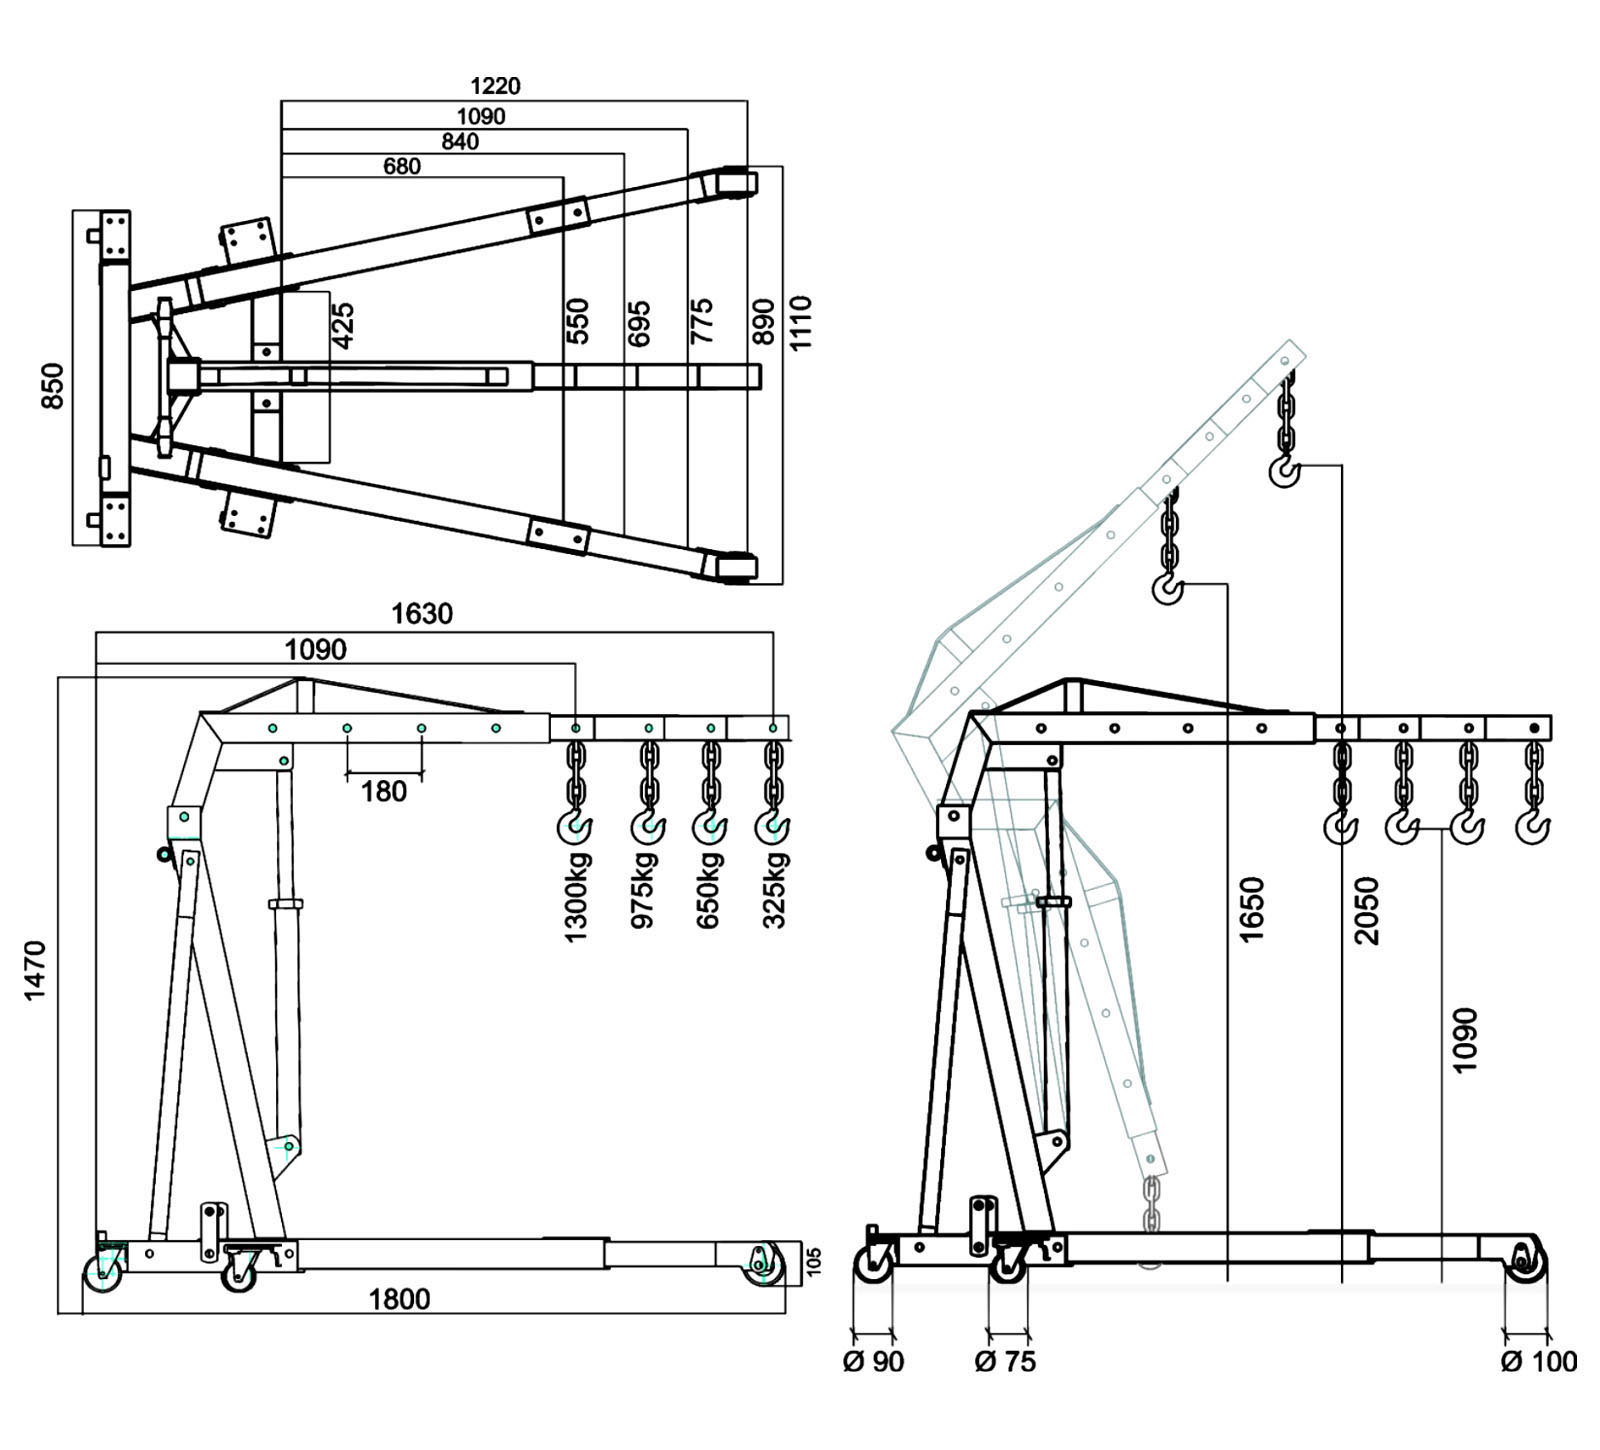 2 sd hoist wiring diagram electric pallet jack diagram ... monorail crane wiring diagram p h crane wiring diagram #7